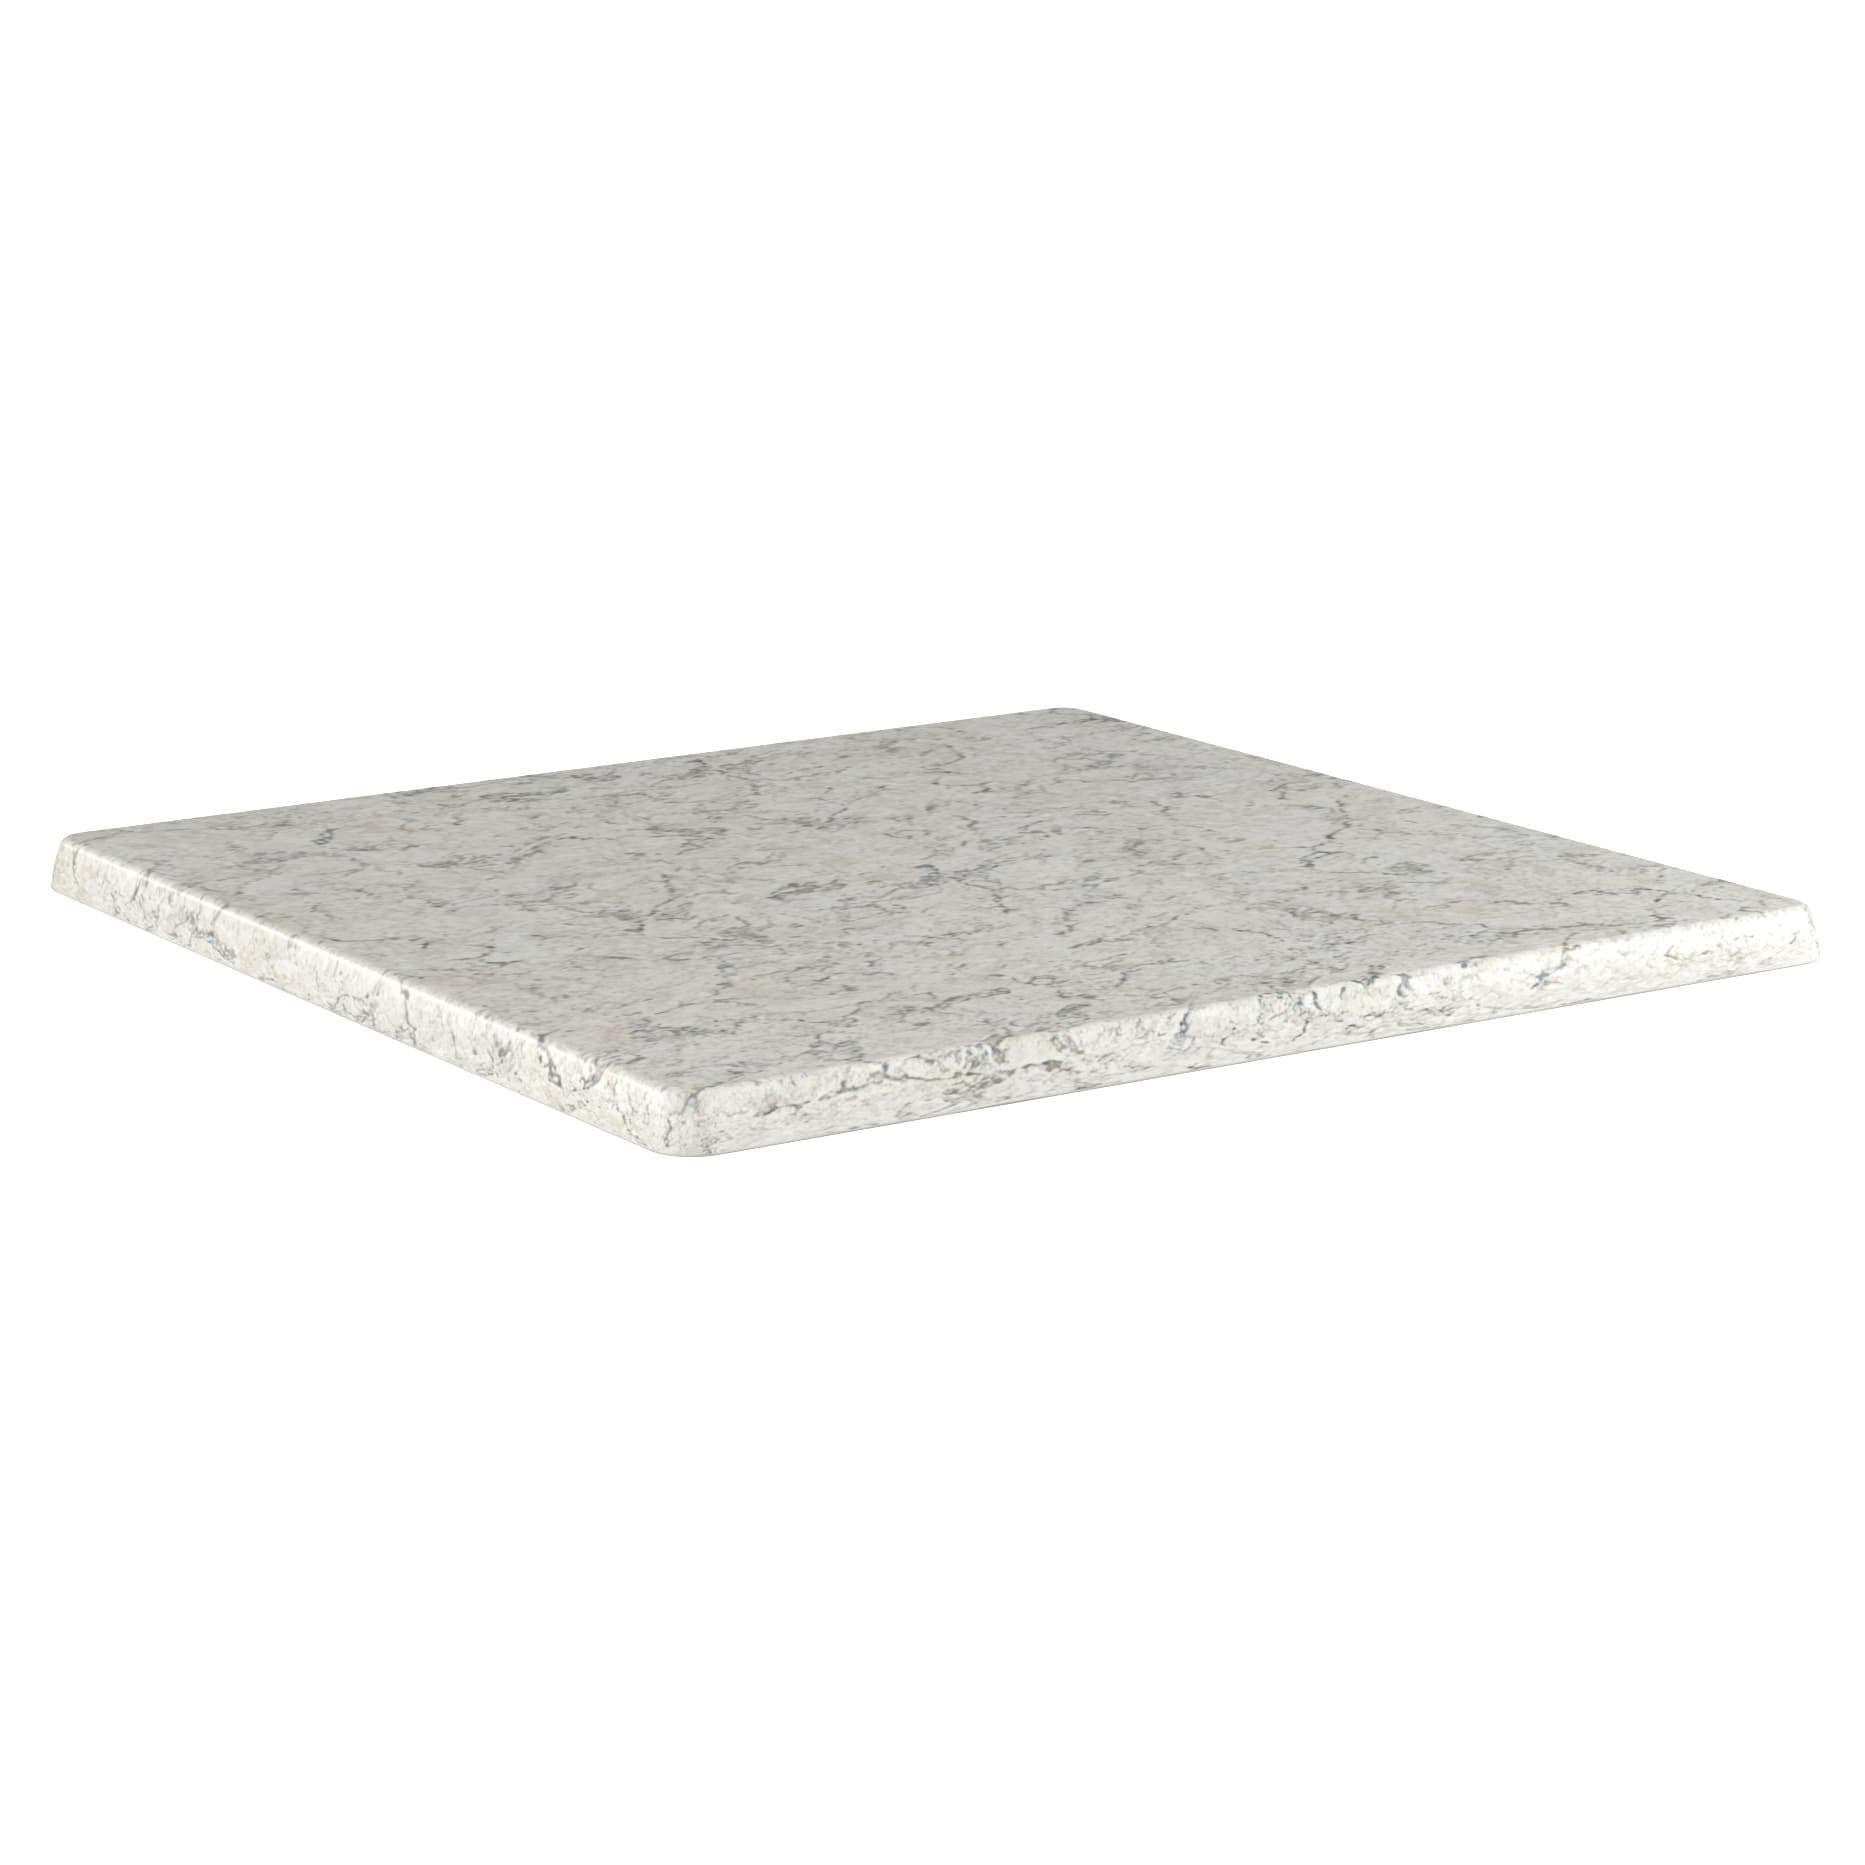 Outdoor Resin Table Top in Light Marble Finish with Outdoor Resin Table Top in Light Marble Finish